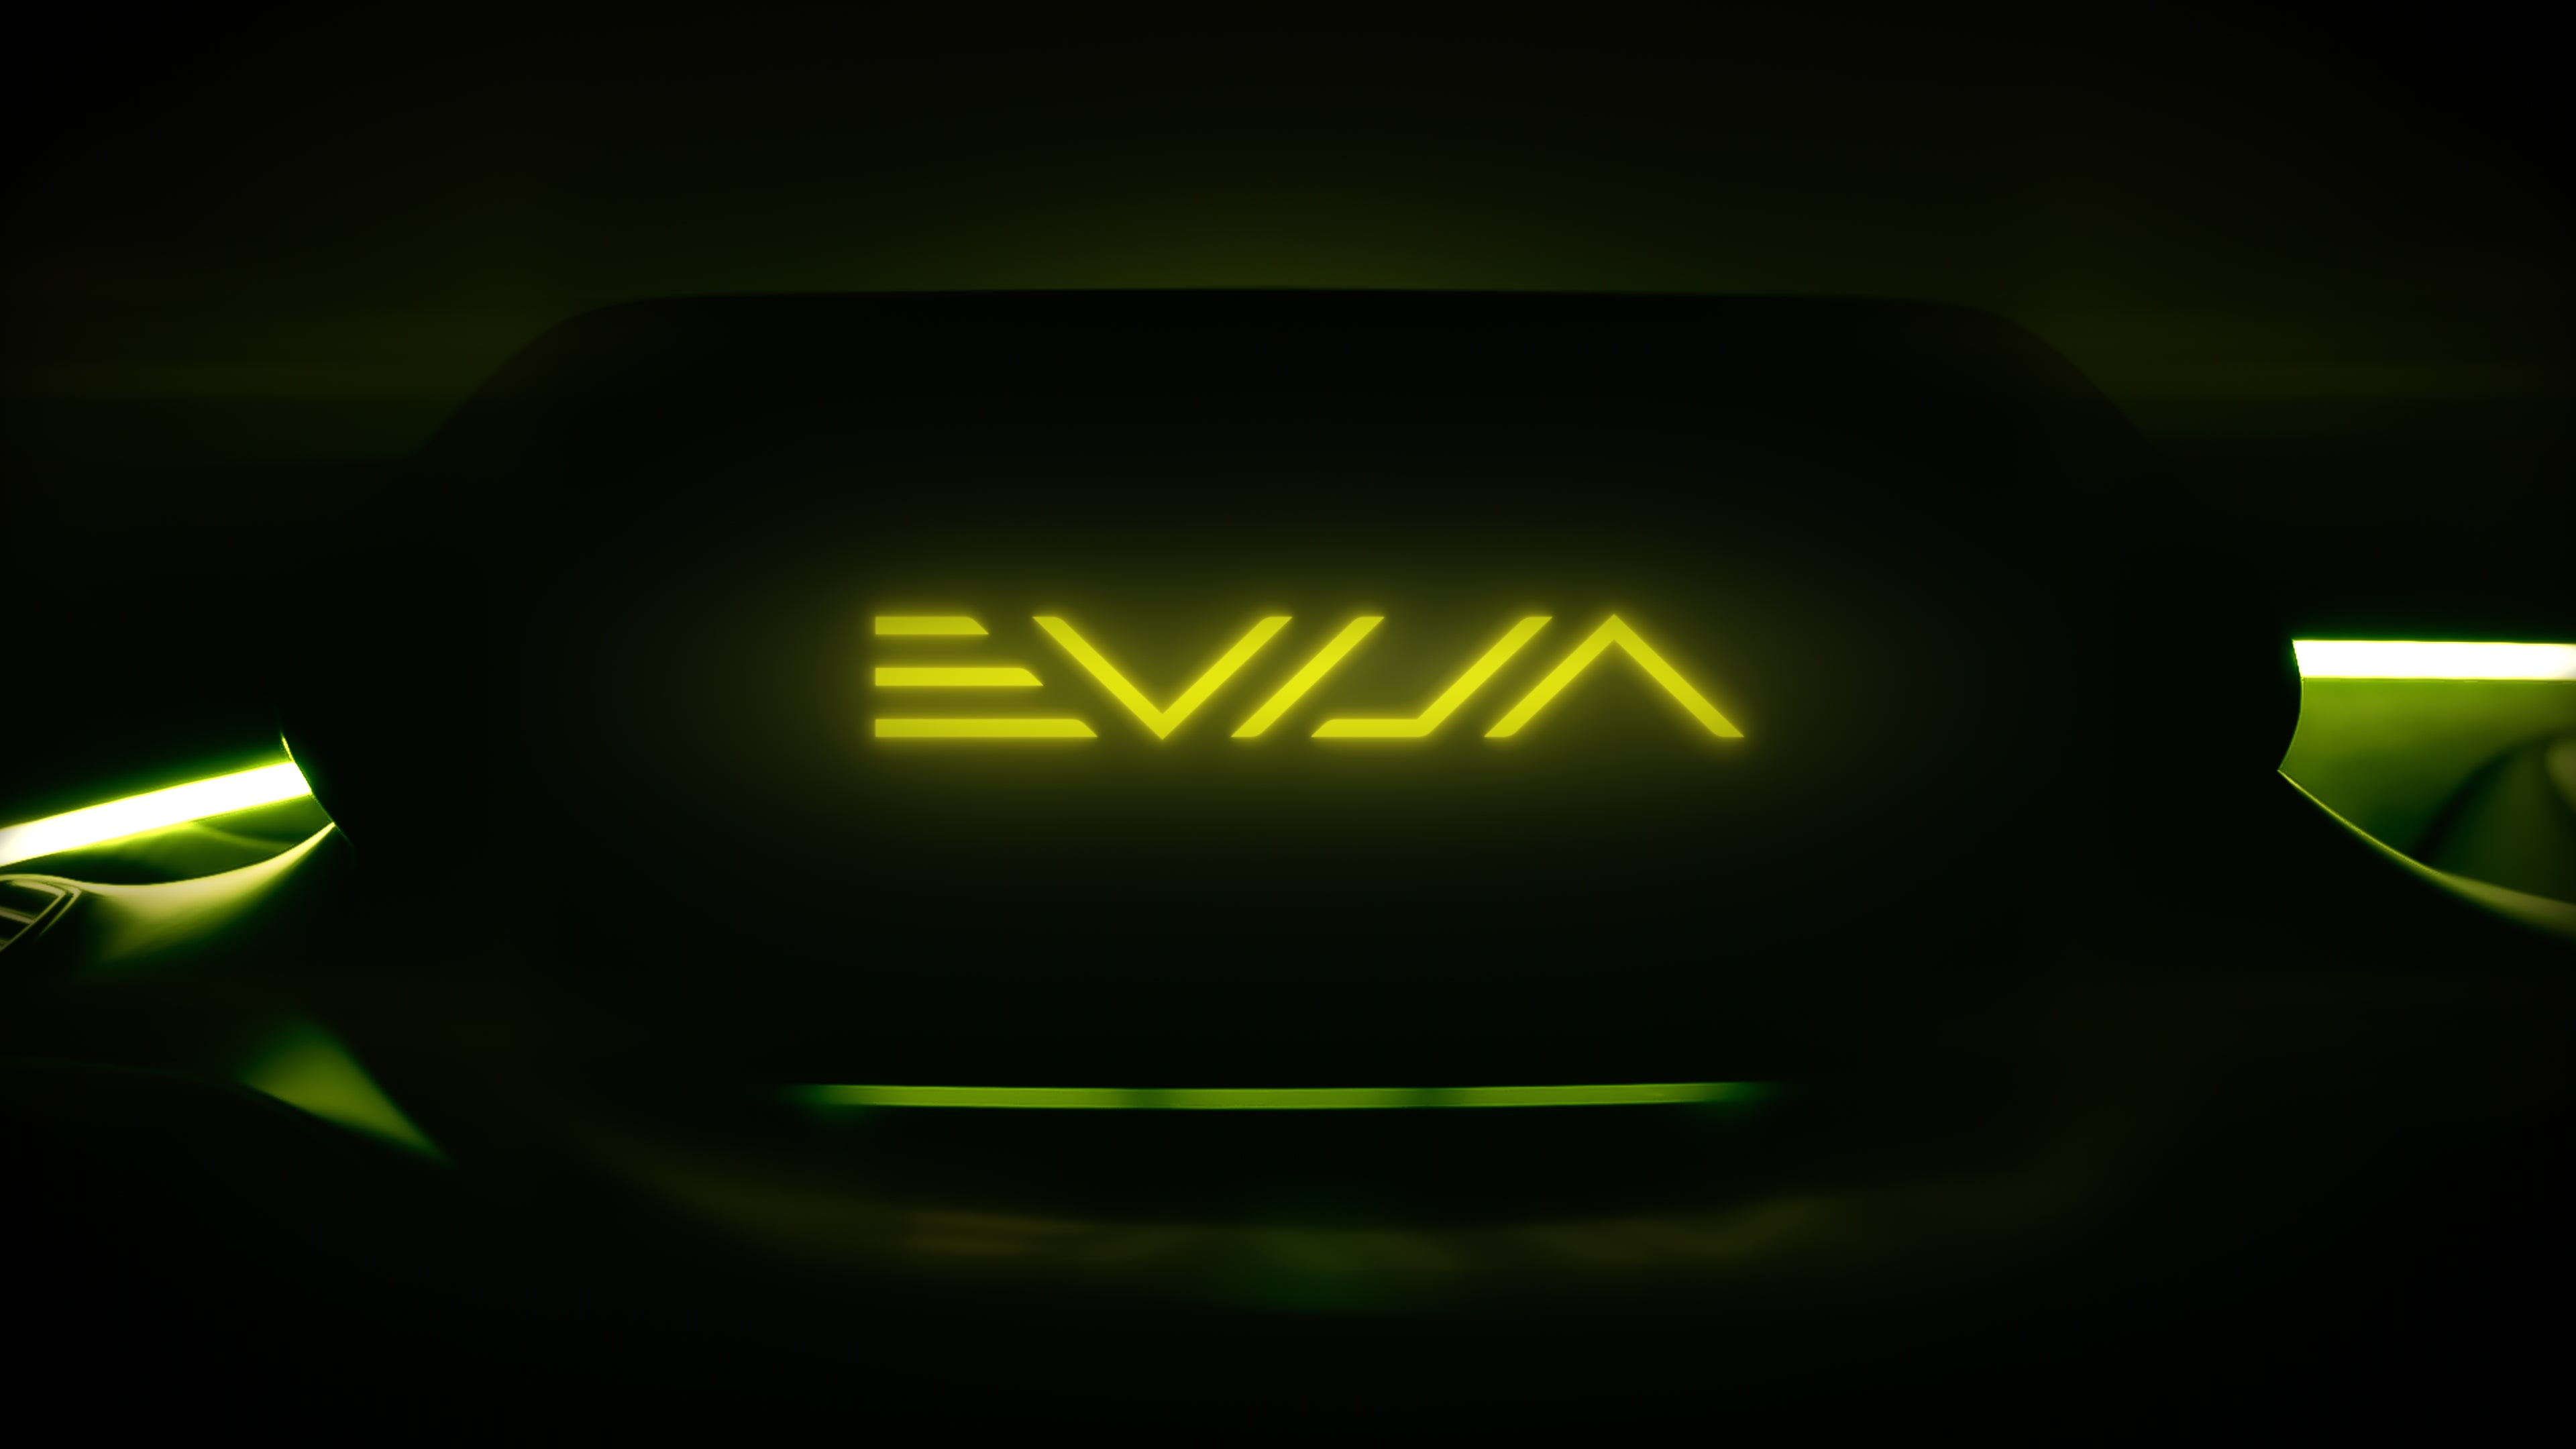 What Language Is The Lotus Evija From?